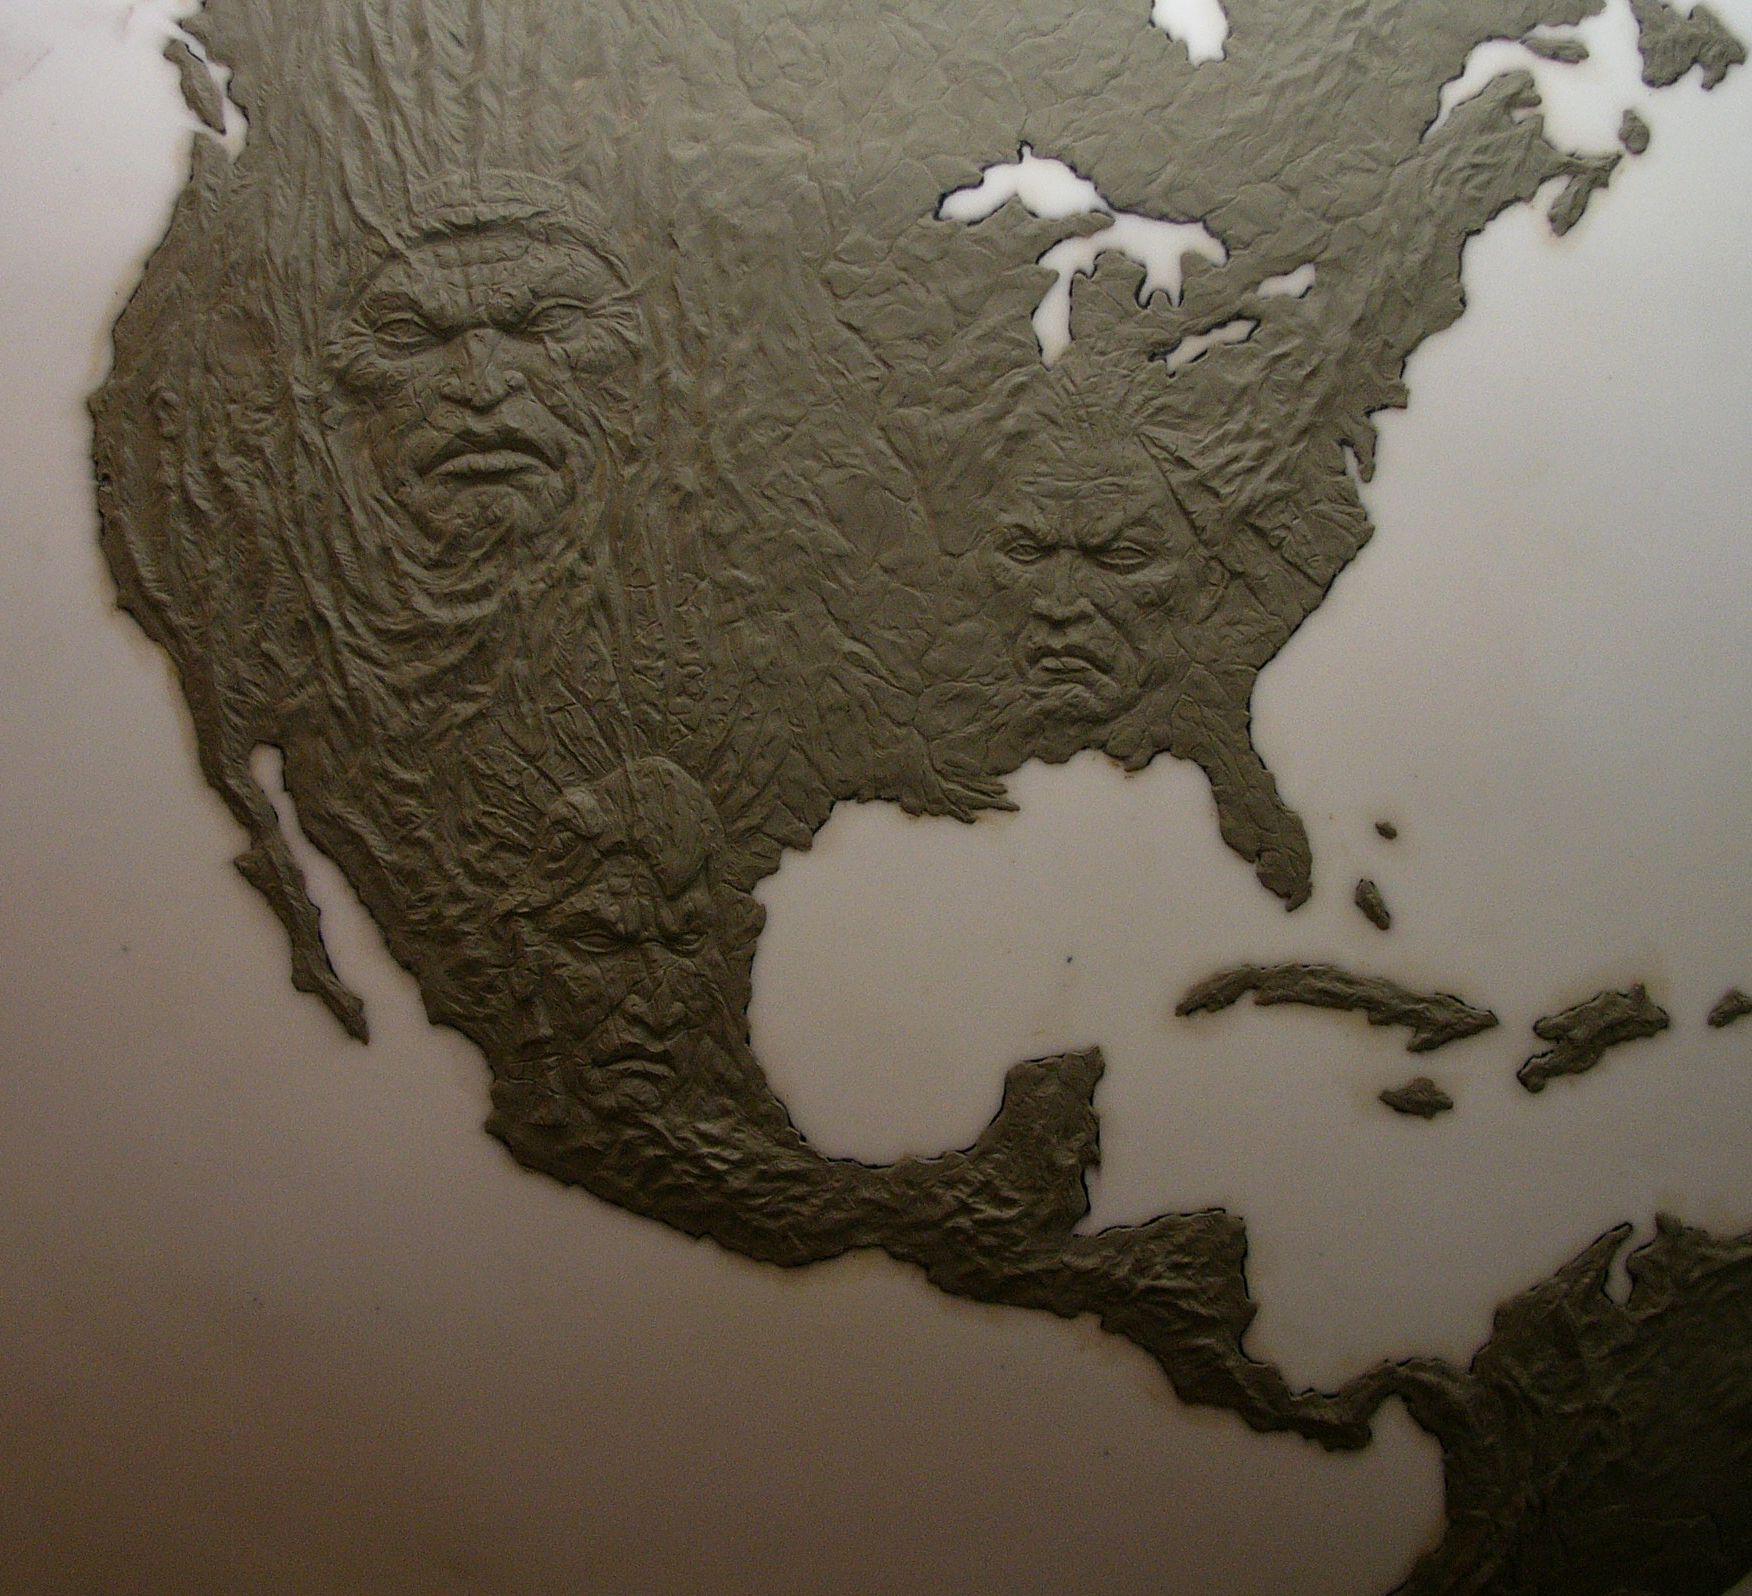 A Topographical Relief Map For Microsoft S Advertising Campaign